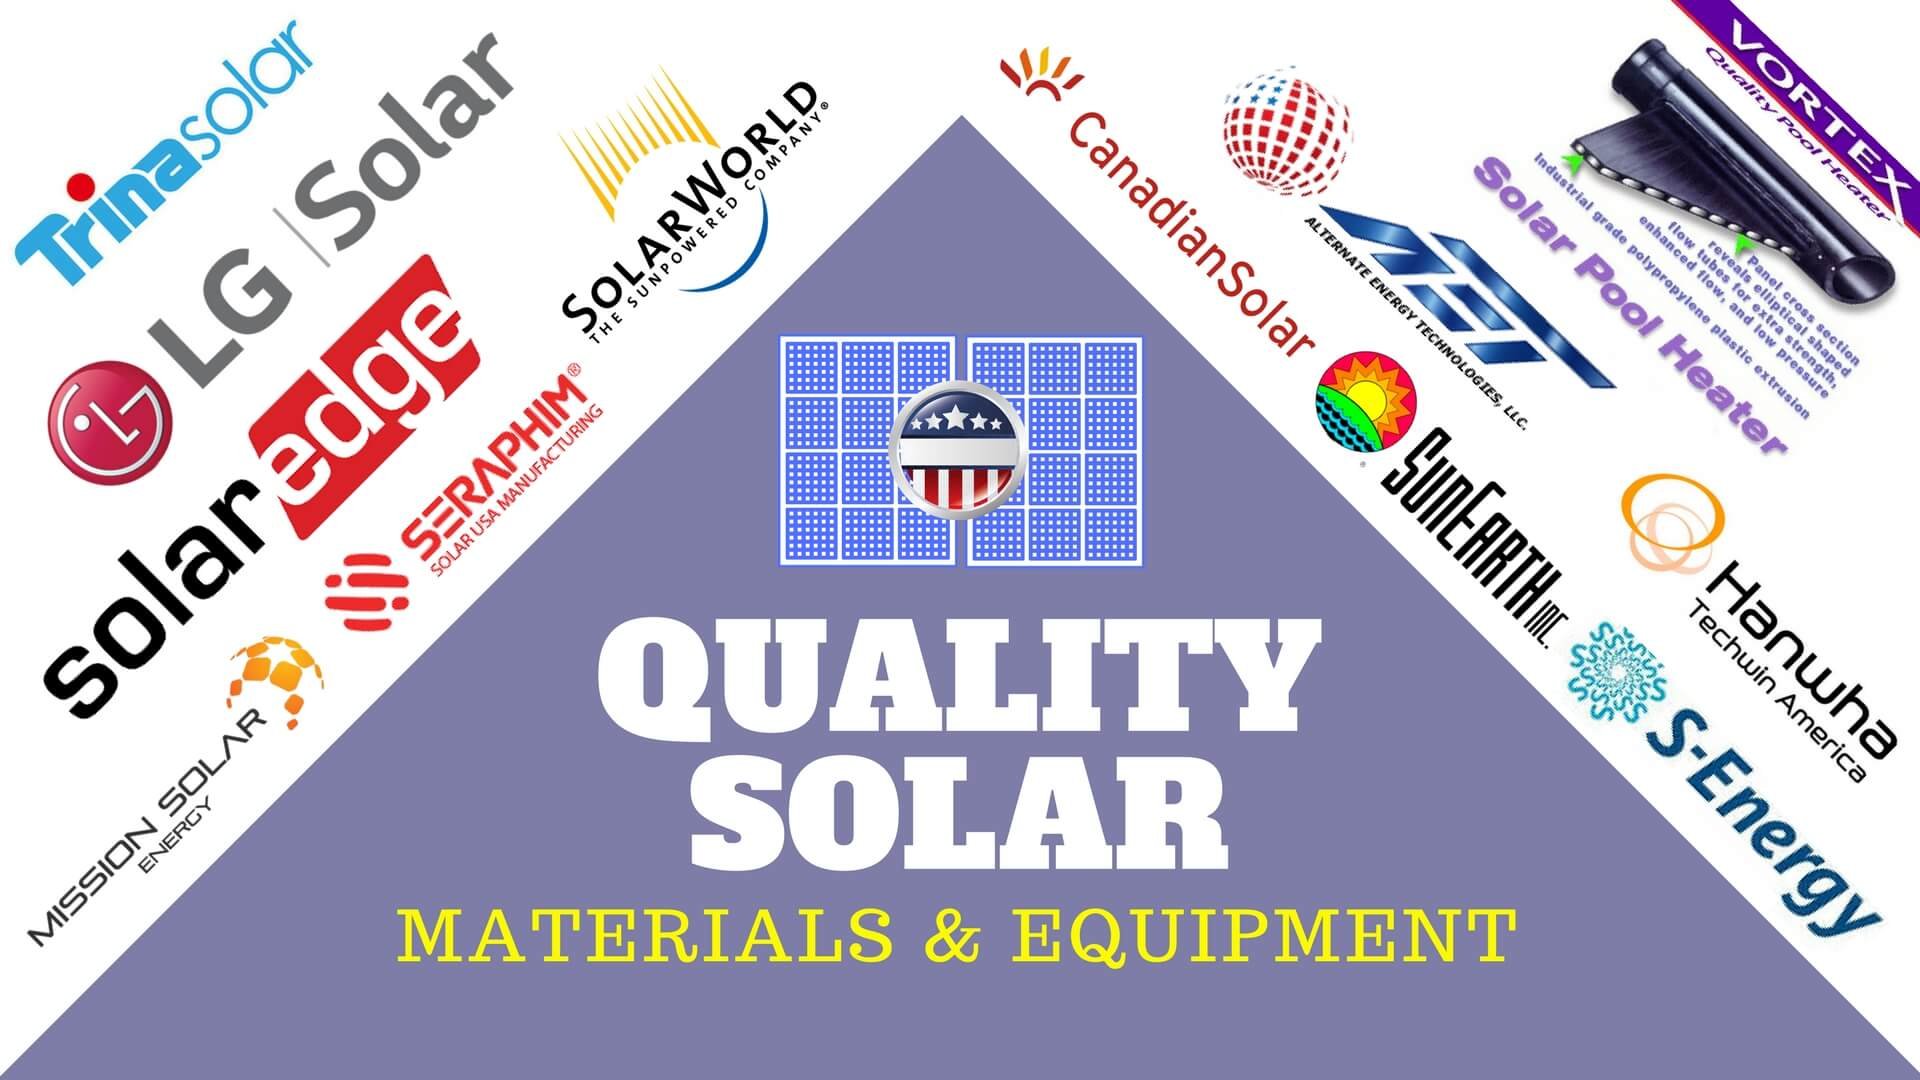 We offer quality, Tier 1 Solar Energy Materials and Equipment, Solar Electric Systems, Solar Hot Water Systems, Solar Pool Heating Systems for Residential and Commercial Applications